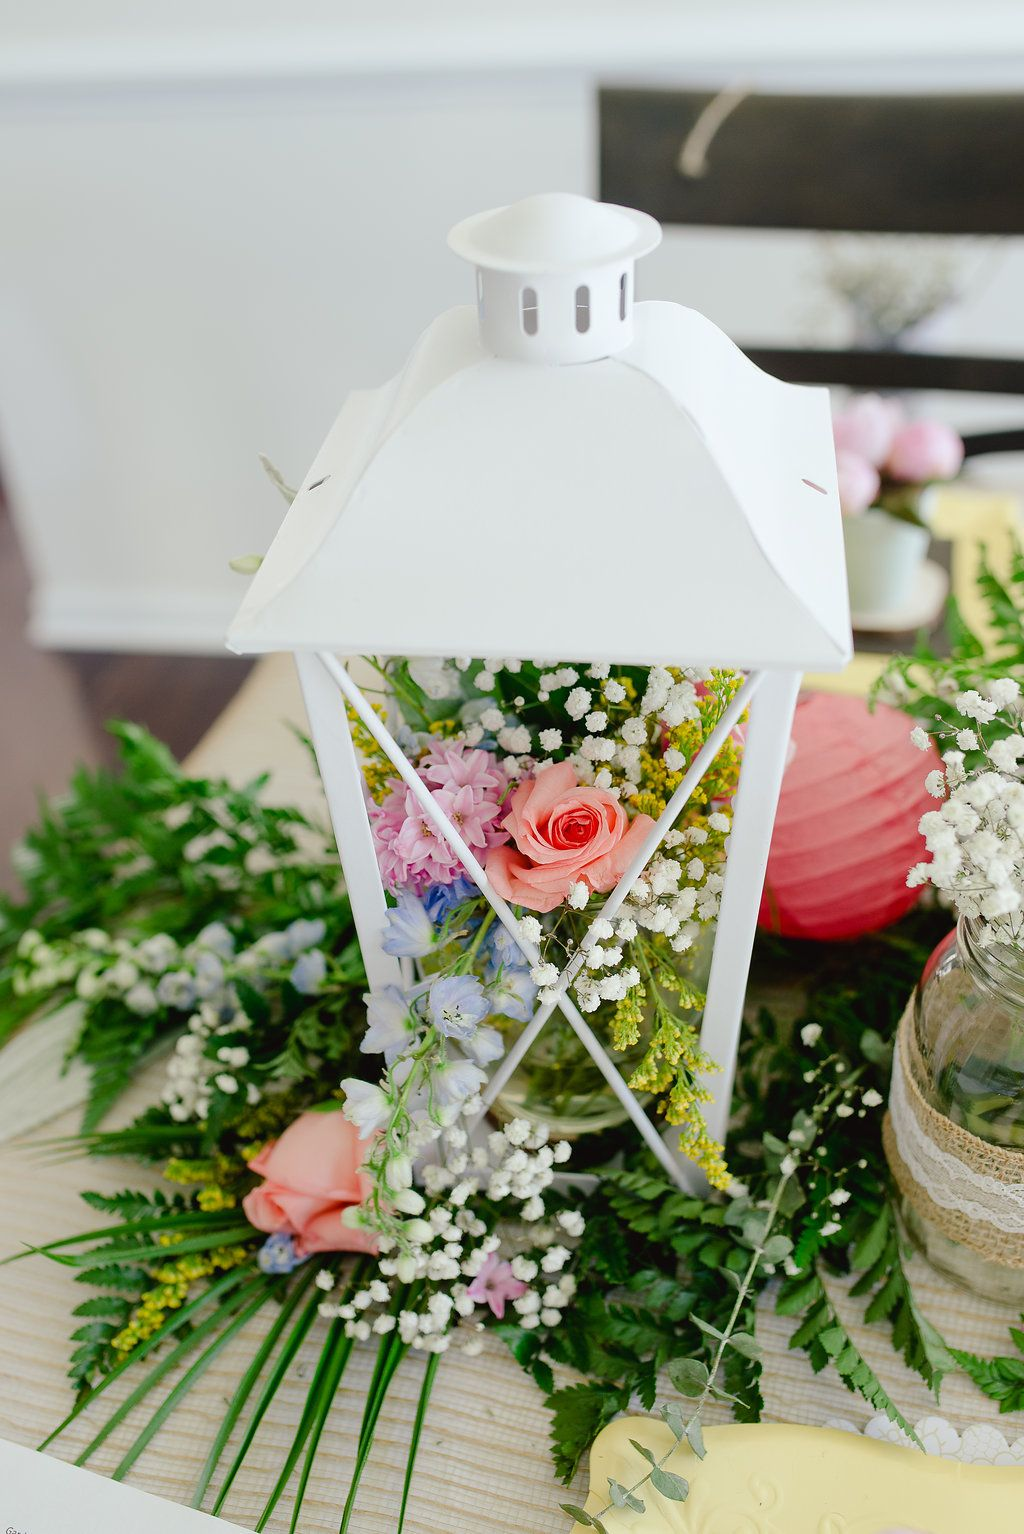 Garden party inspiration  Garden Party Bridal Shower Ideas Centerpiece  Whimsical Garden